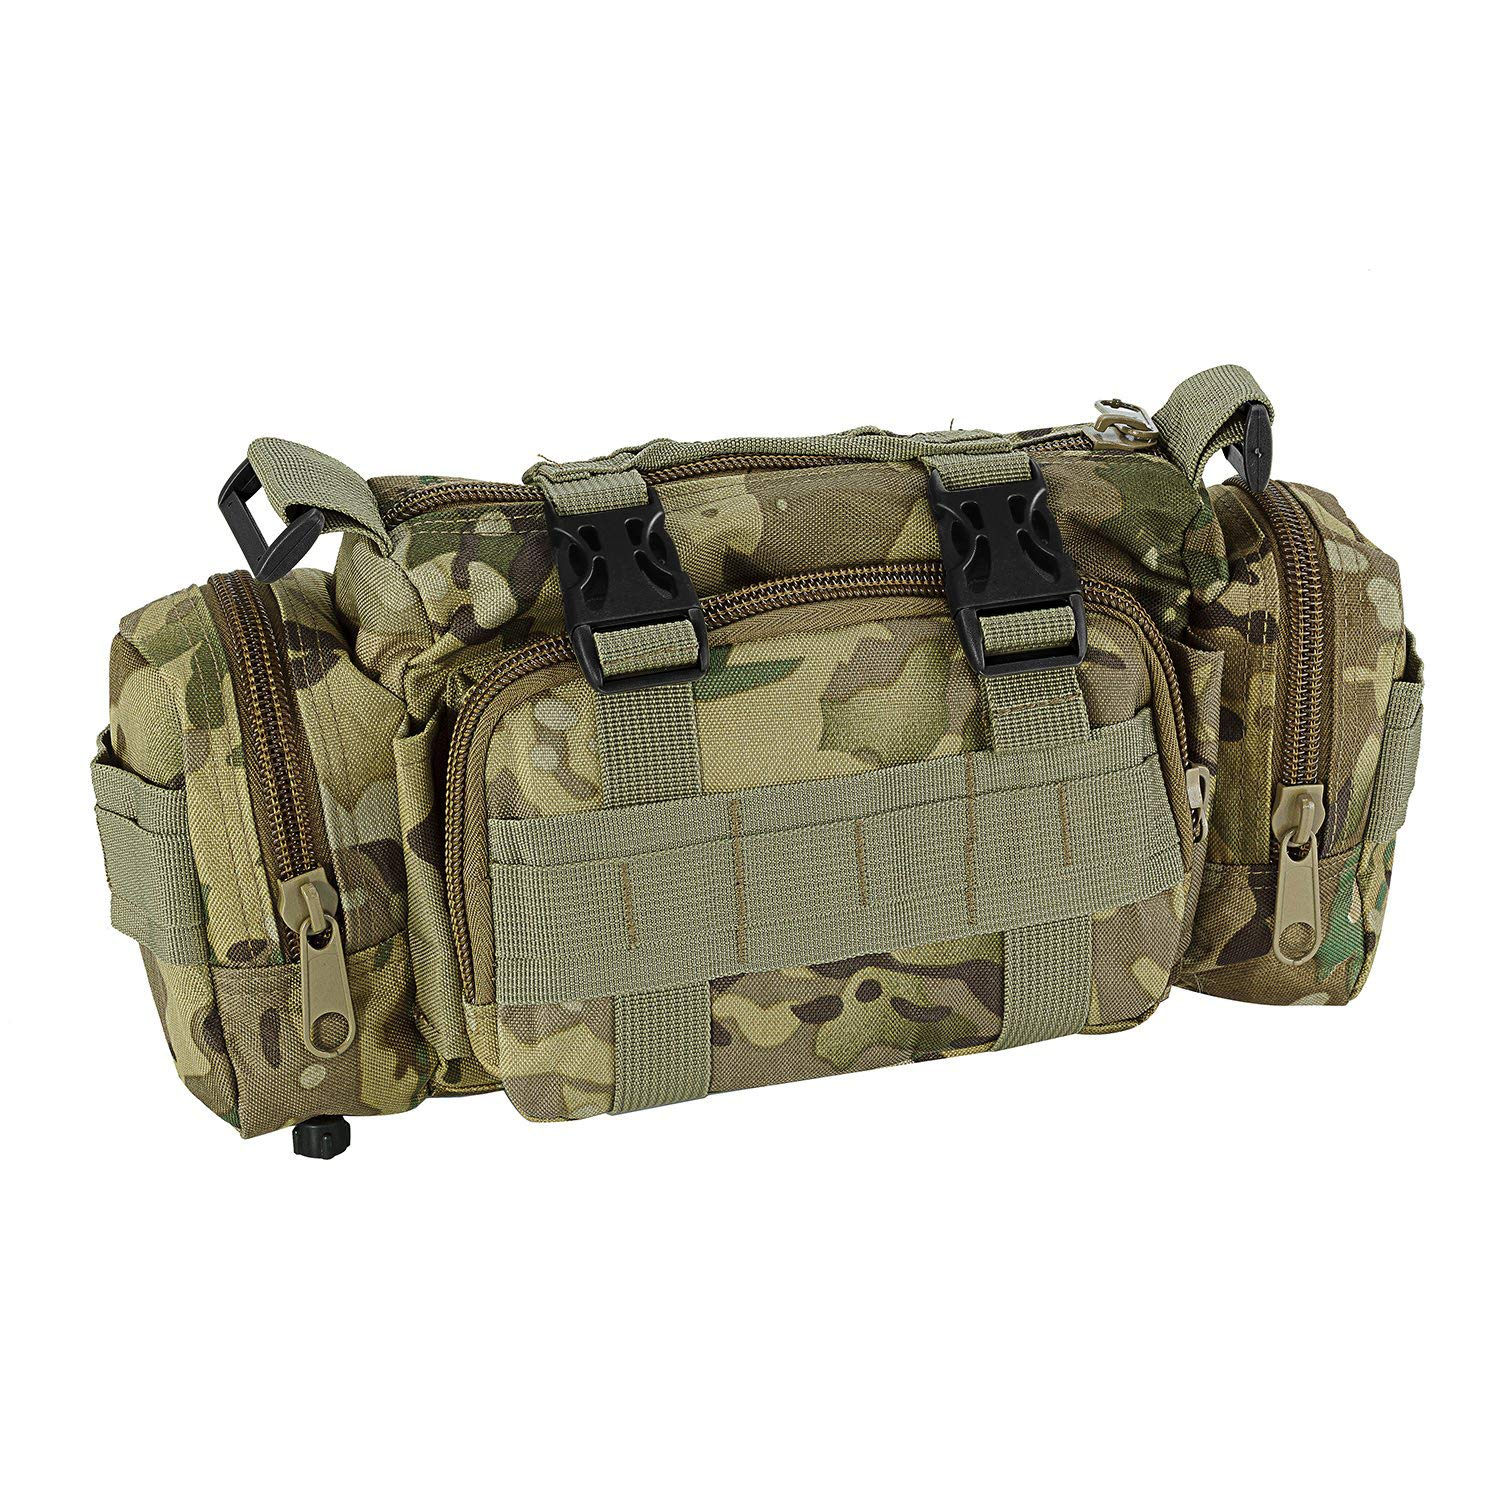 CVLIFE 60L Built-up Military Tactical Army Outdoor Backpacks Assault Combat Rucksack Heavy Bag CP by CVLIFE (Image #6)